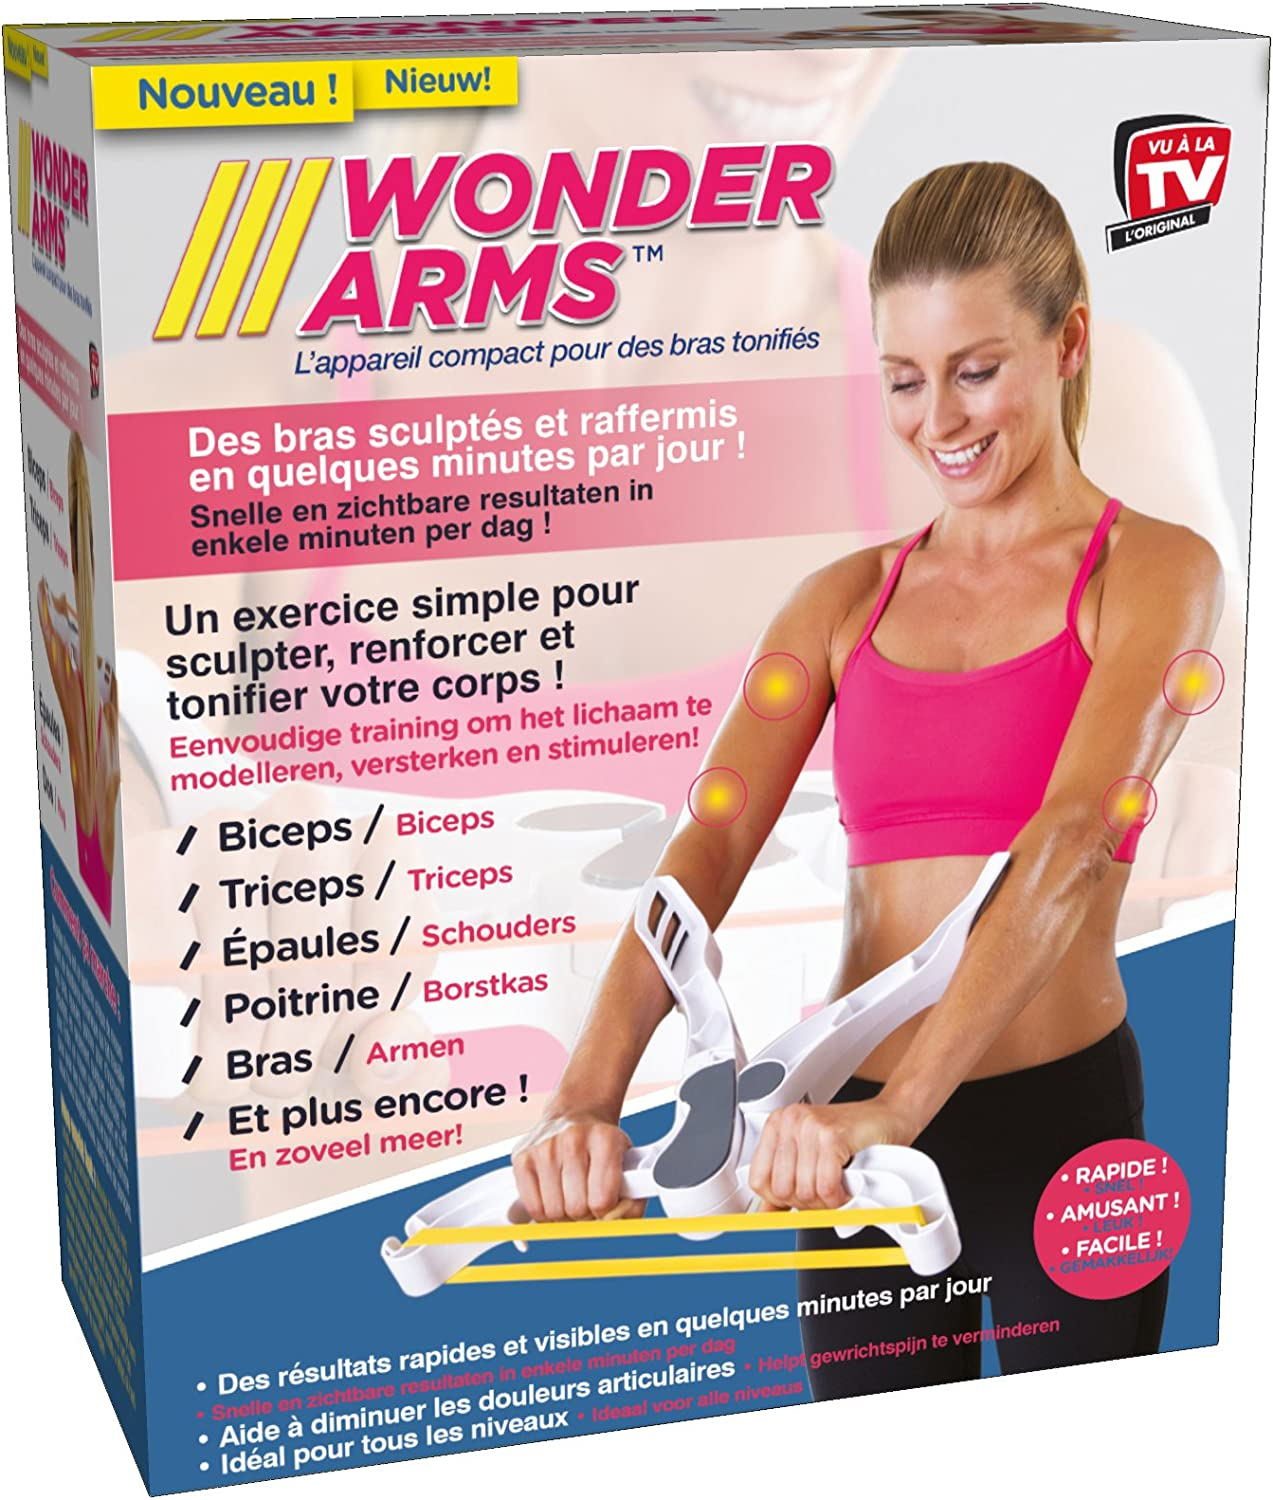 WONDER ARMS The Compact Device For Toning Arms As Seen on TV